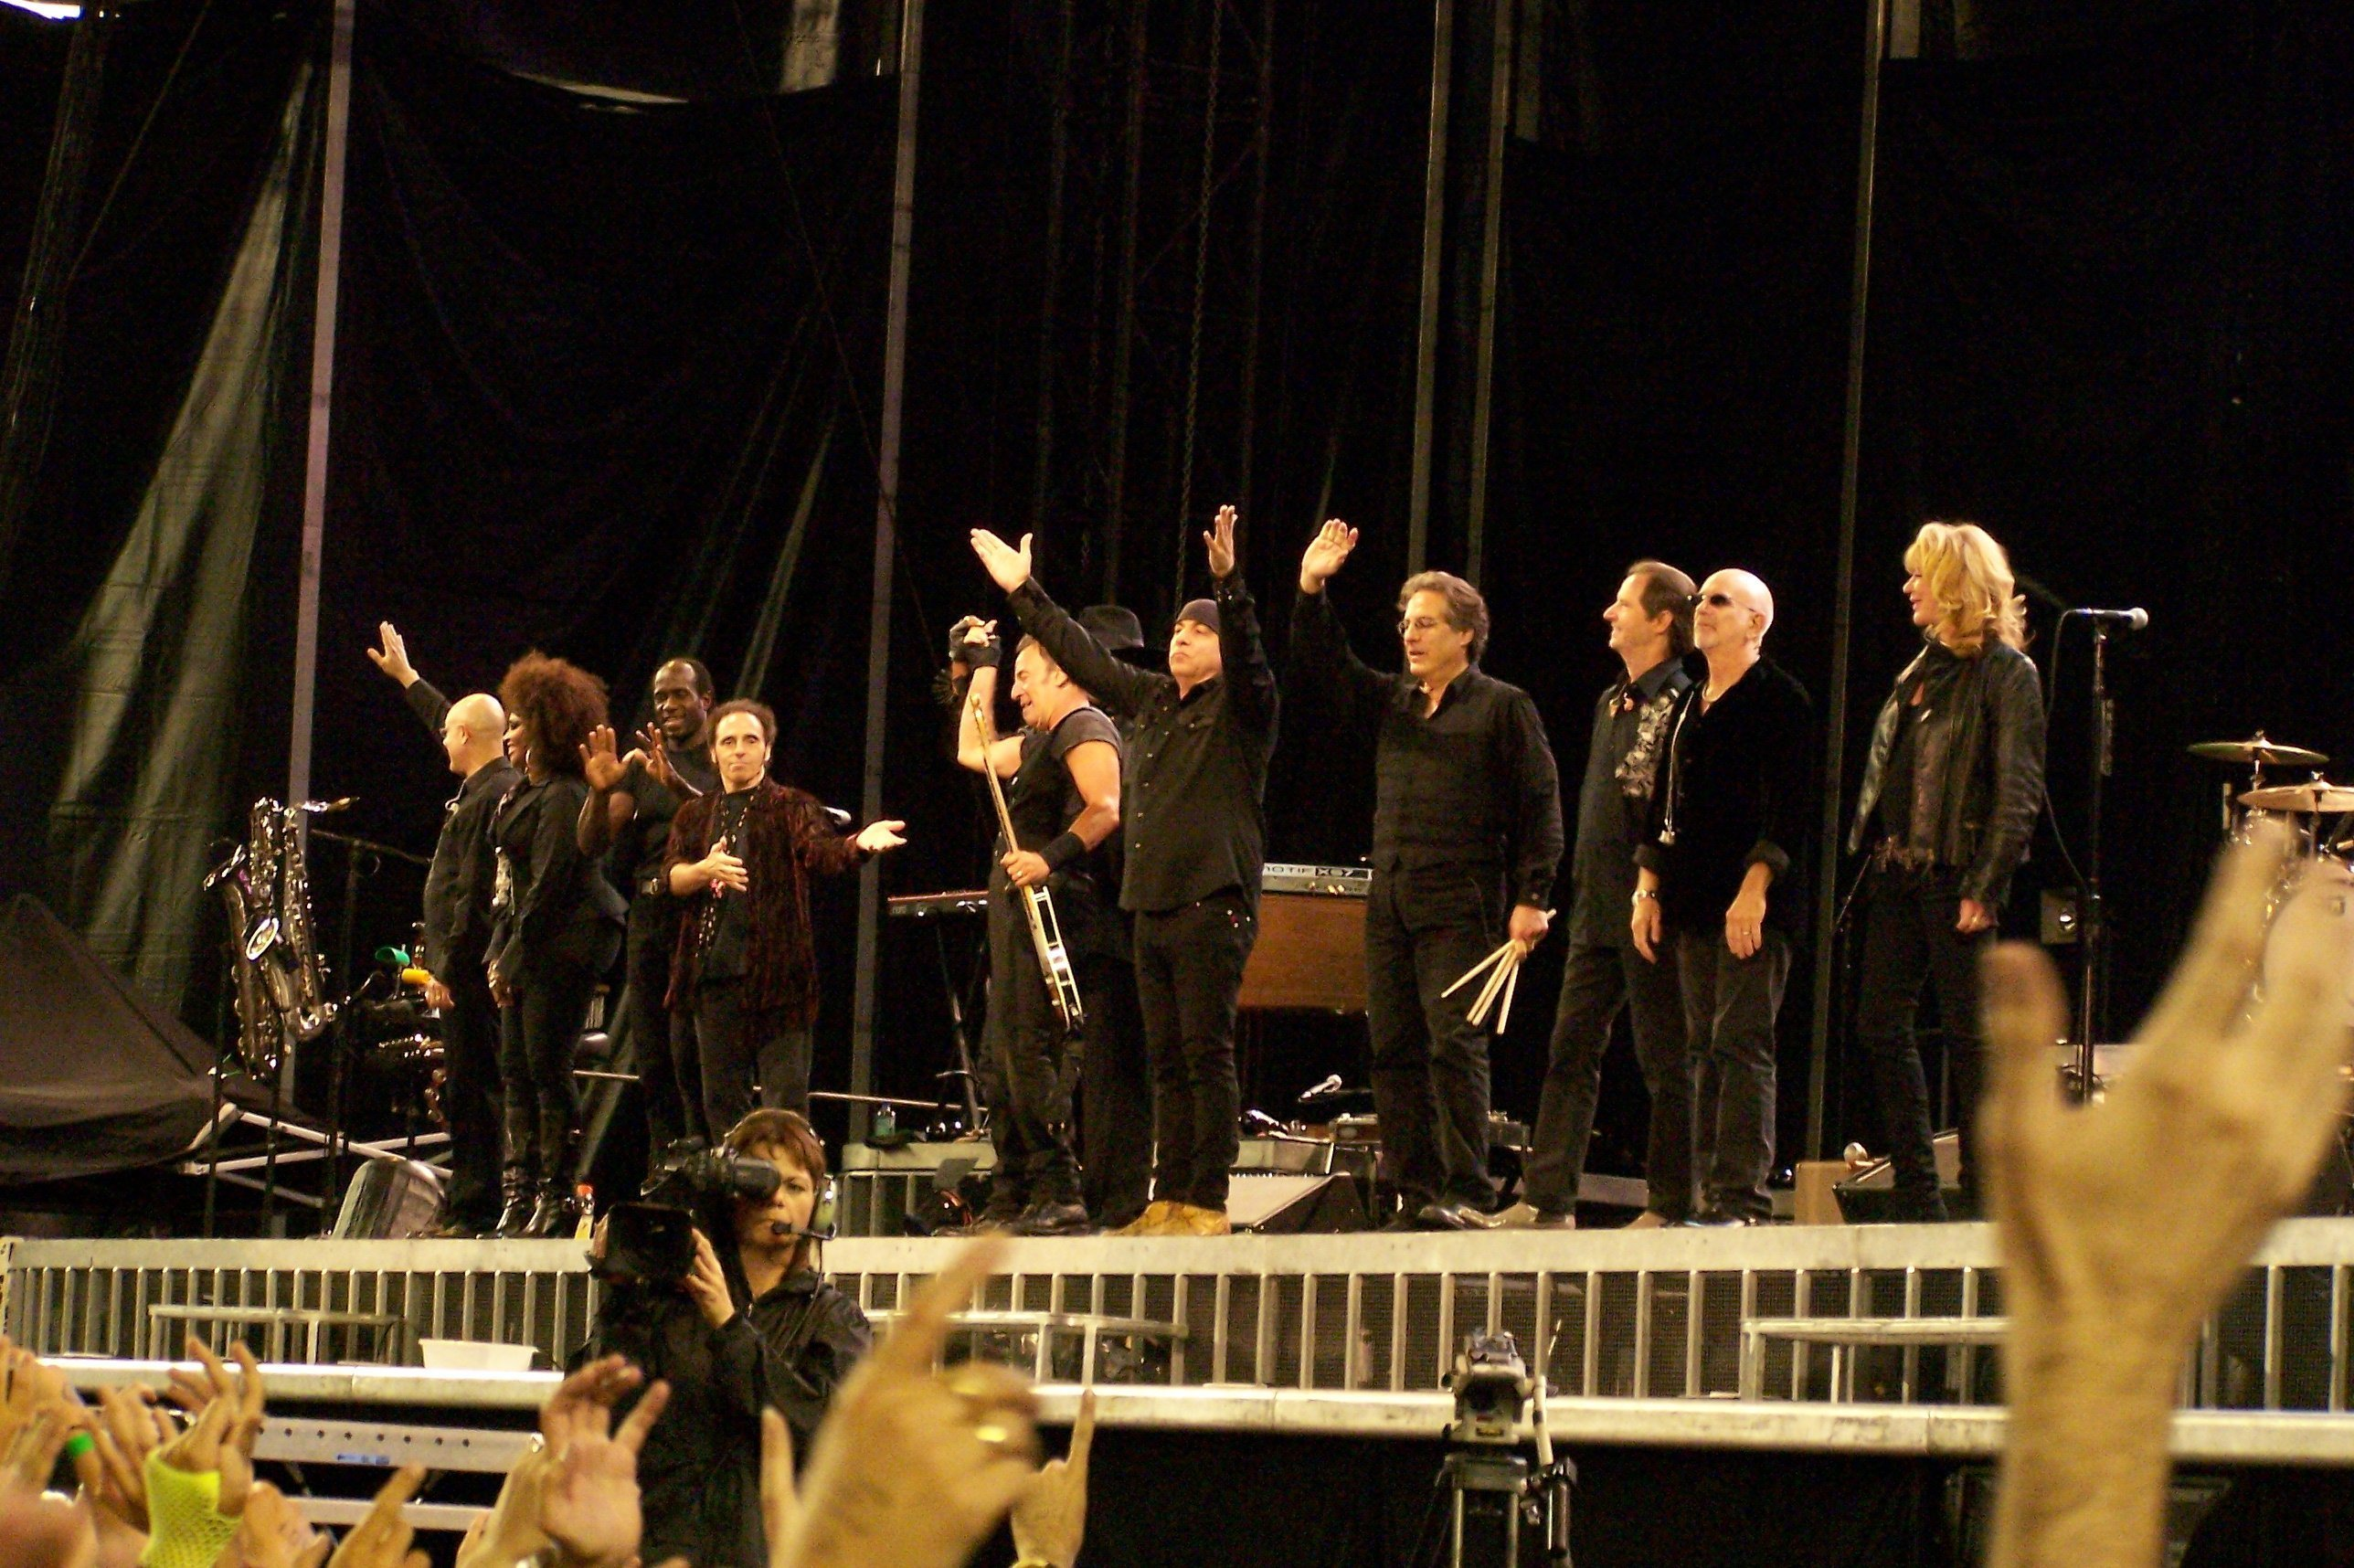 Bruce Springsteen & the E Street Band Official Photo